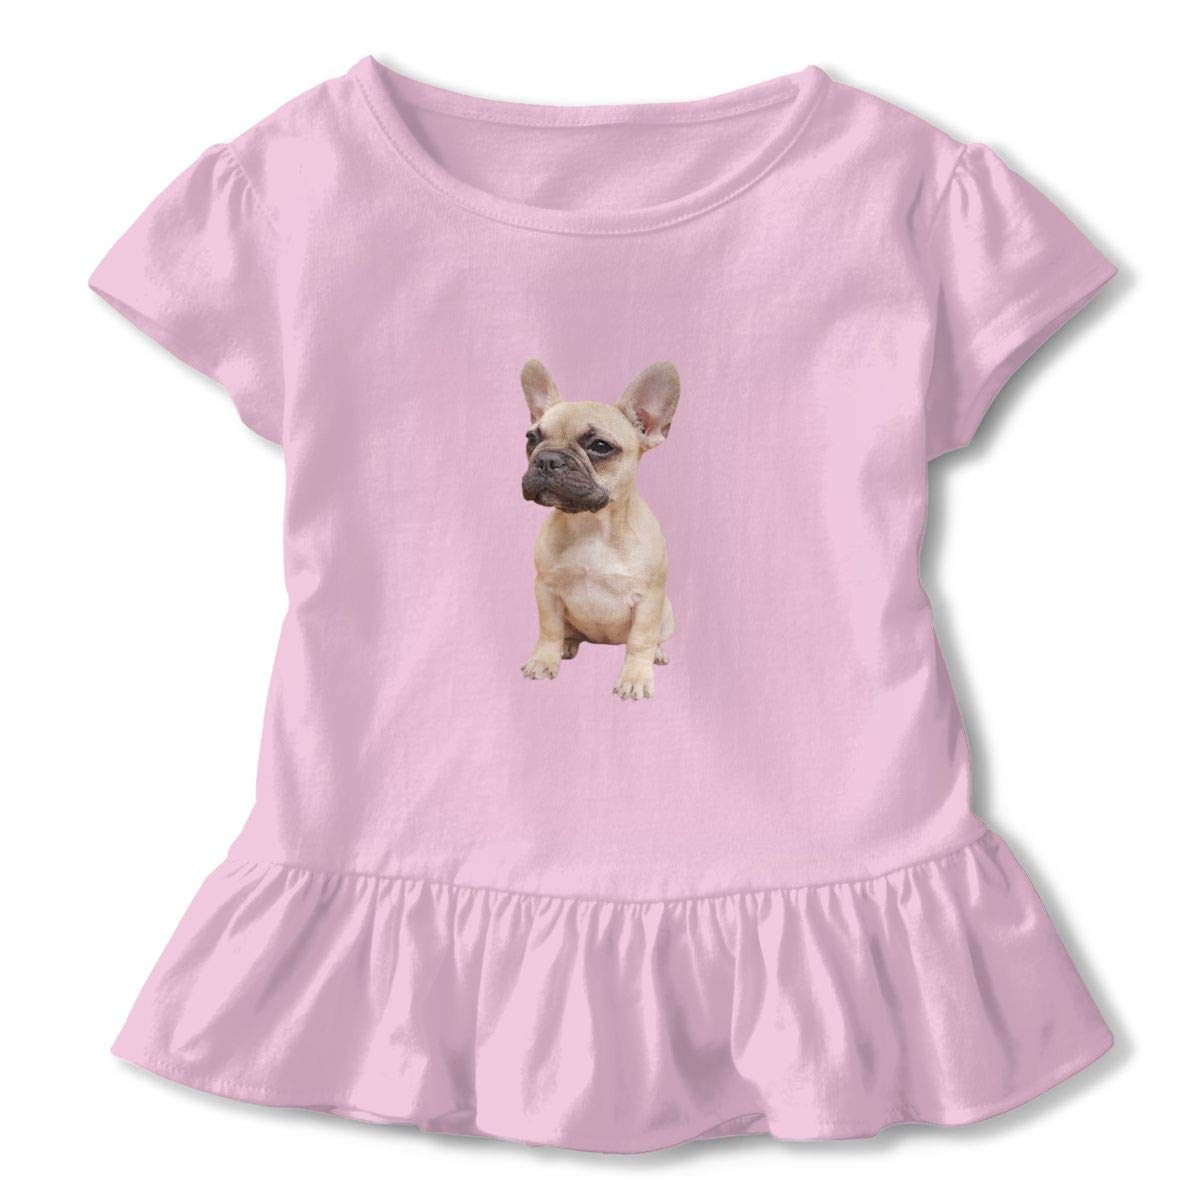 Kwai-h Bulldog Outdoor Lover Short-Sleeve Tunic T-Shirt